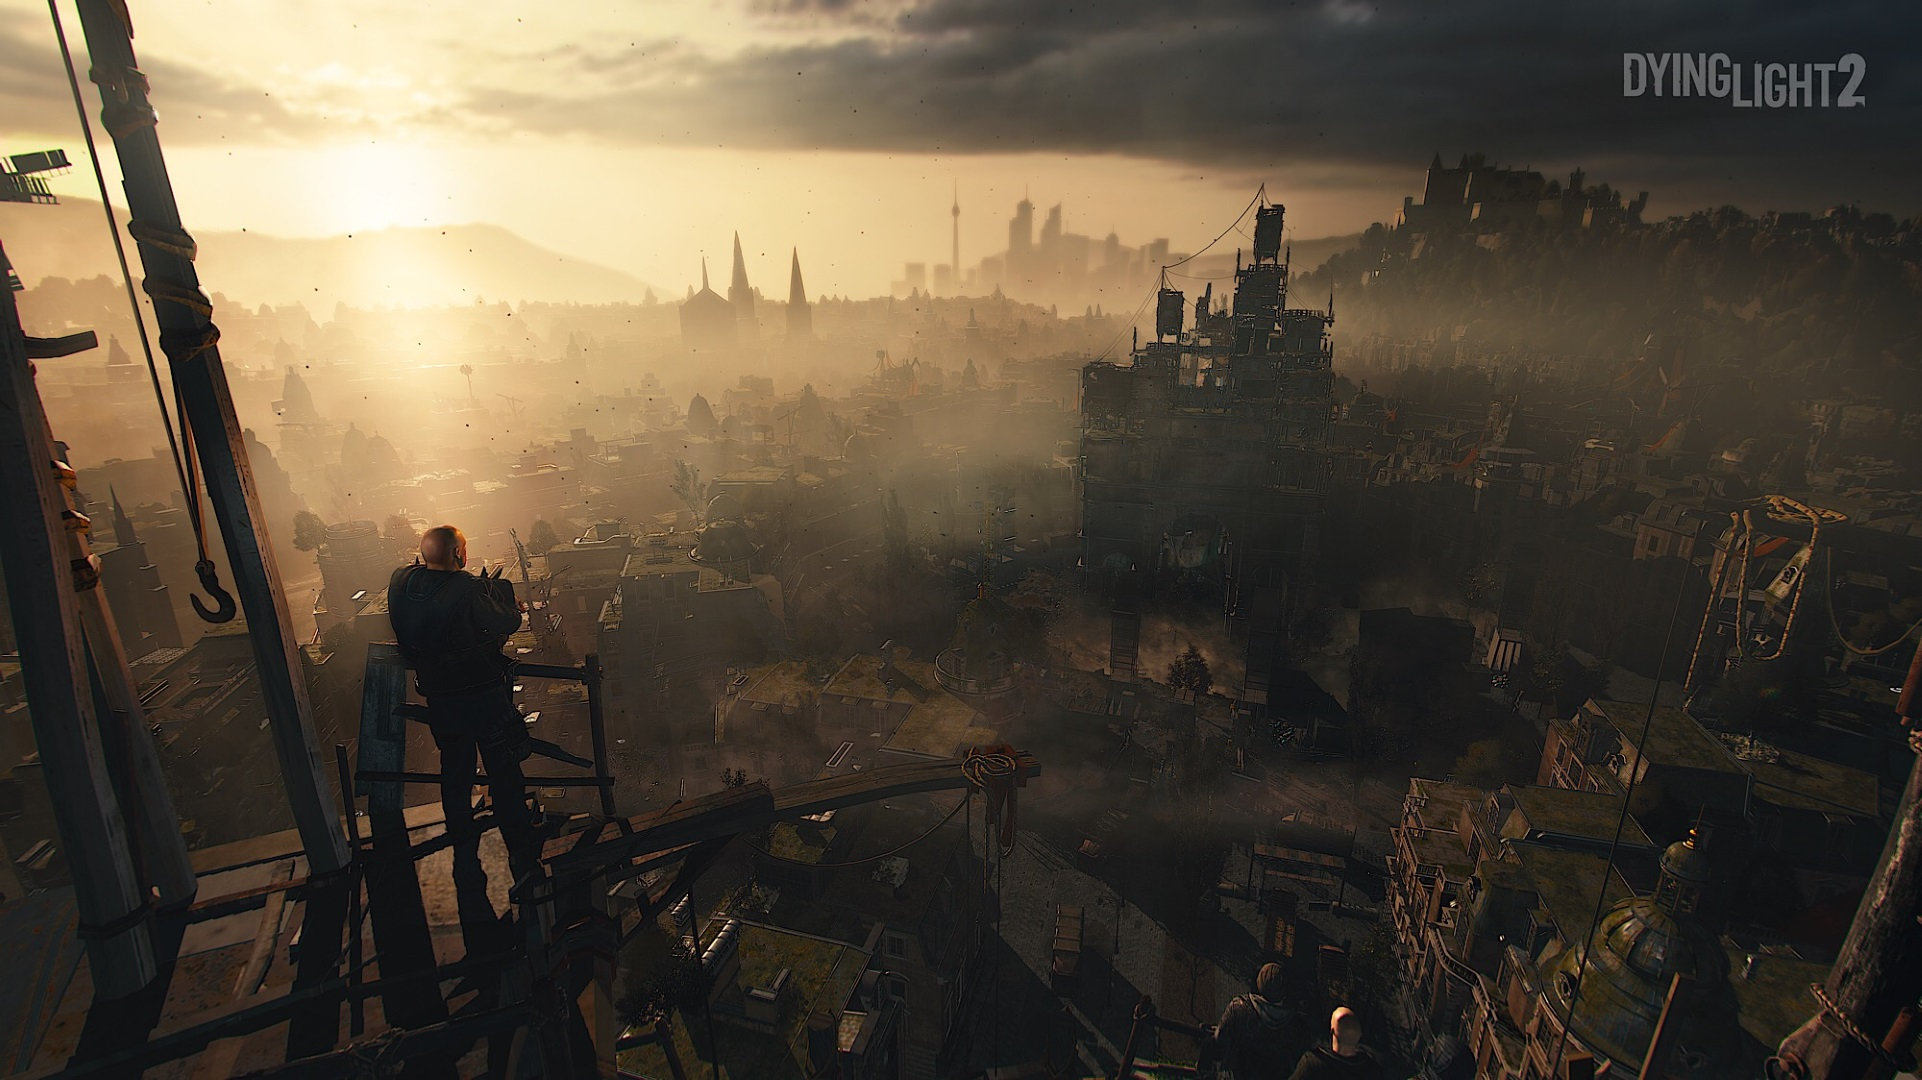 Dying Light 2 Release Date Delayed All The Latest